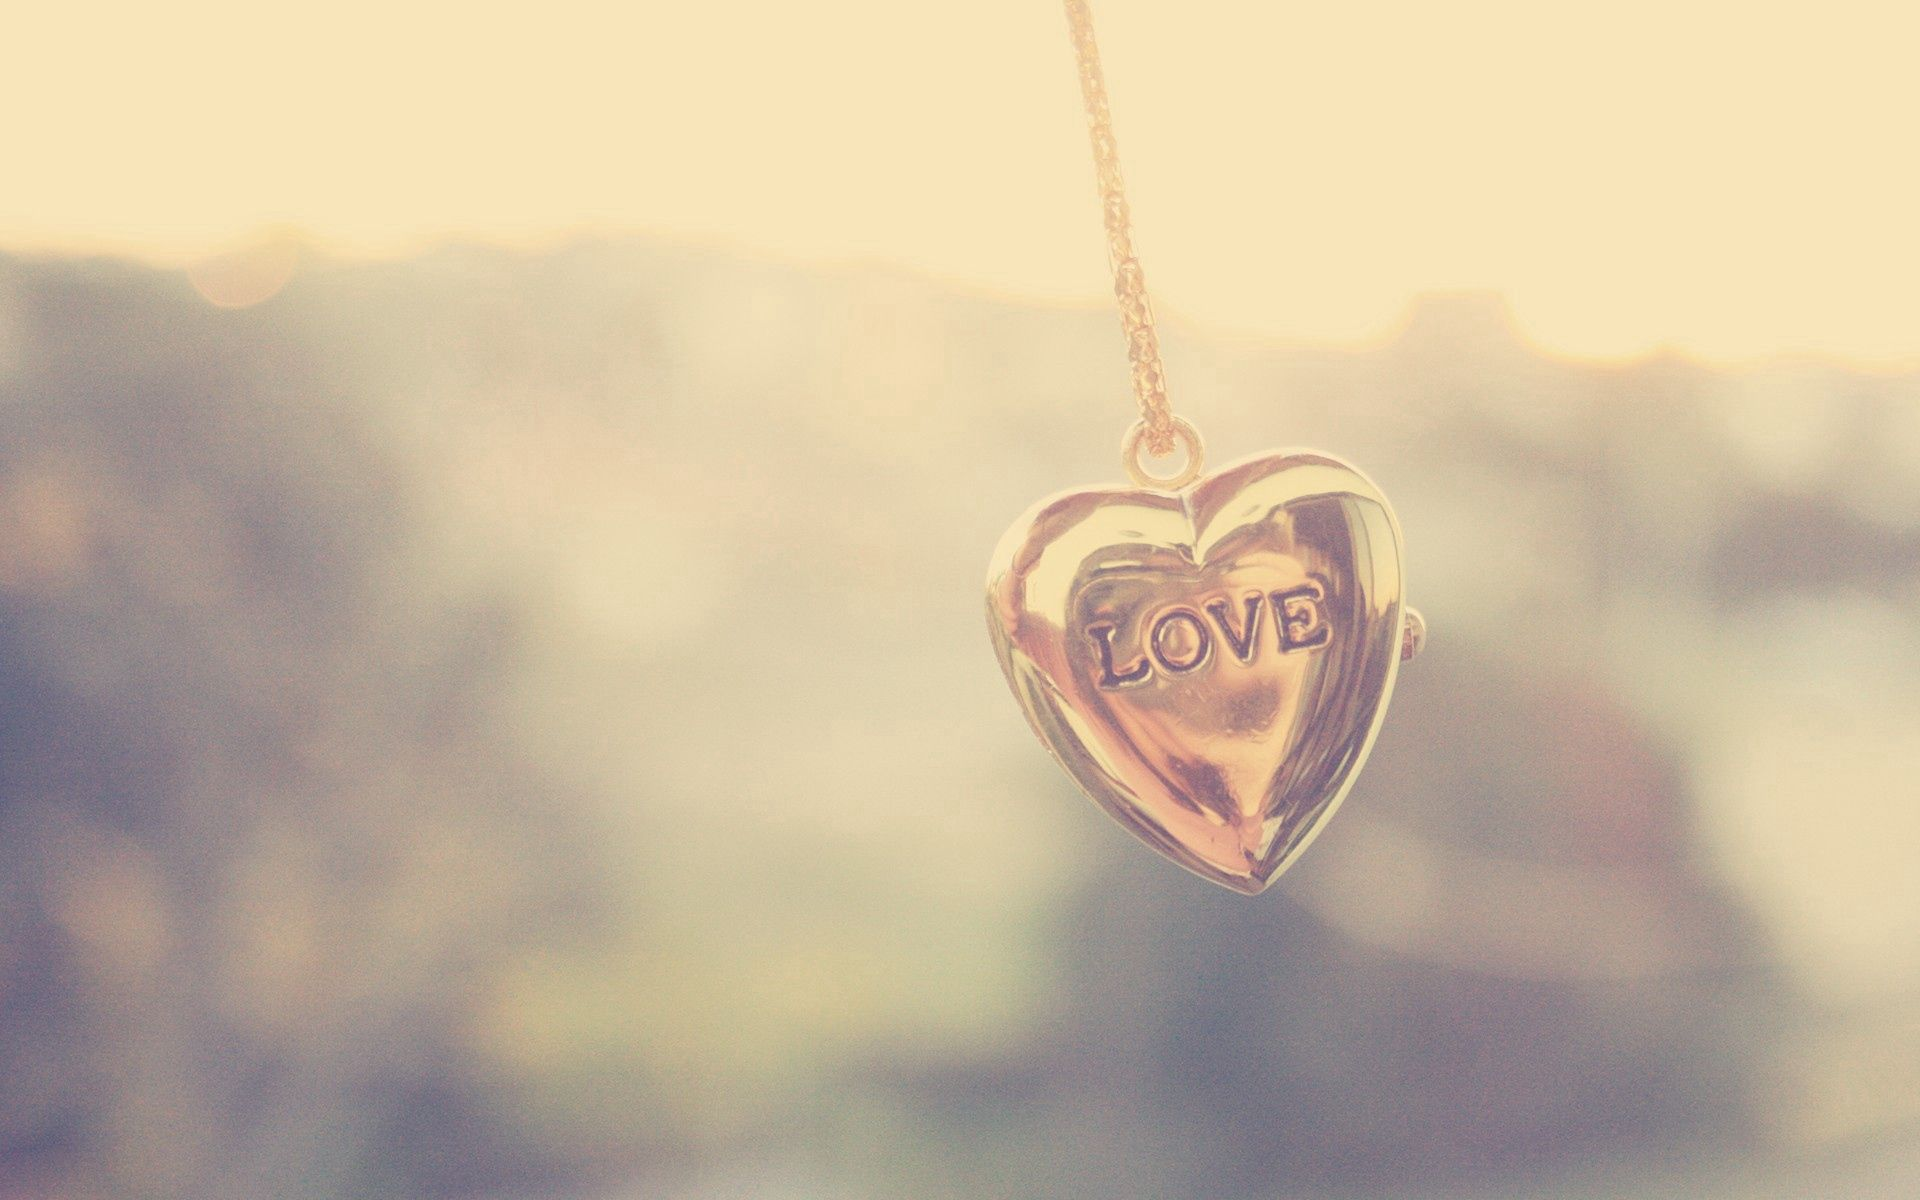 136966 download wallpaper Suspension, Chain, Shine, Light, Love, Heart screensavers and pictures for free